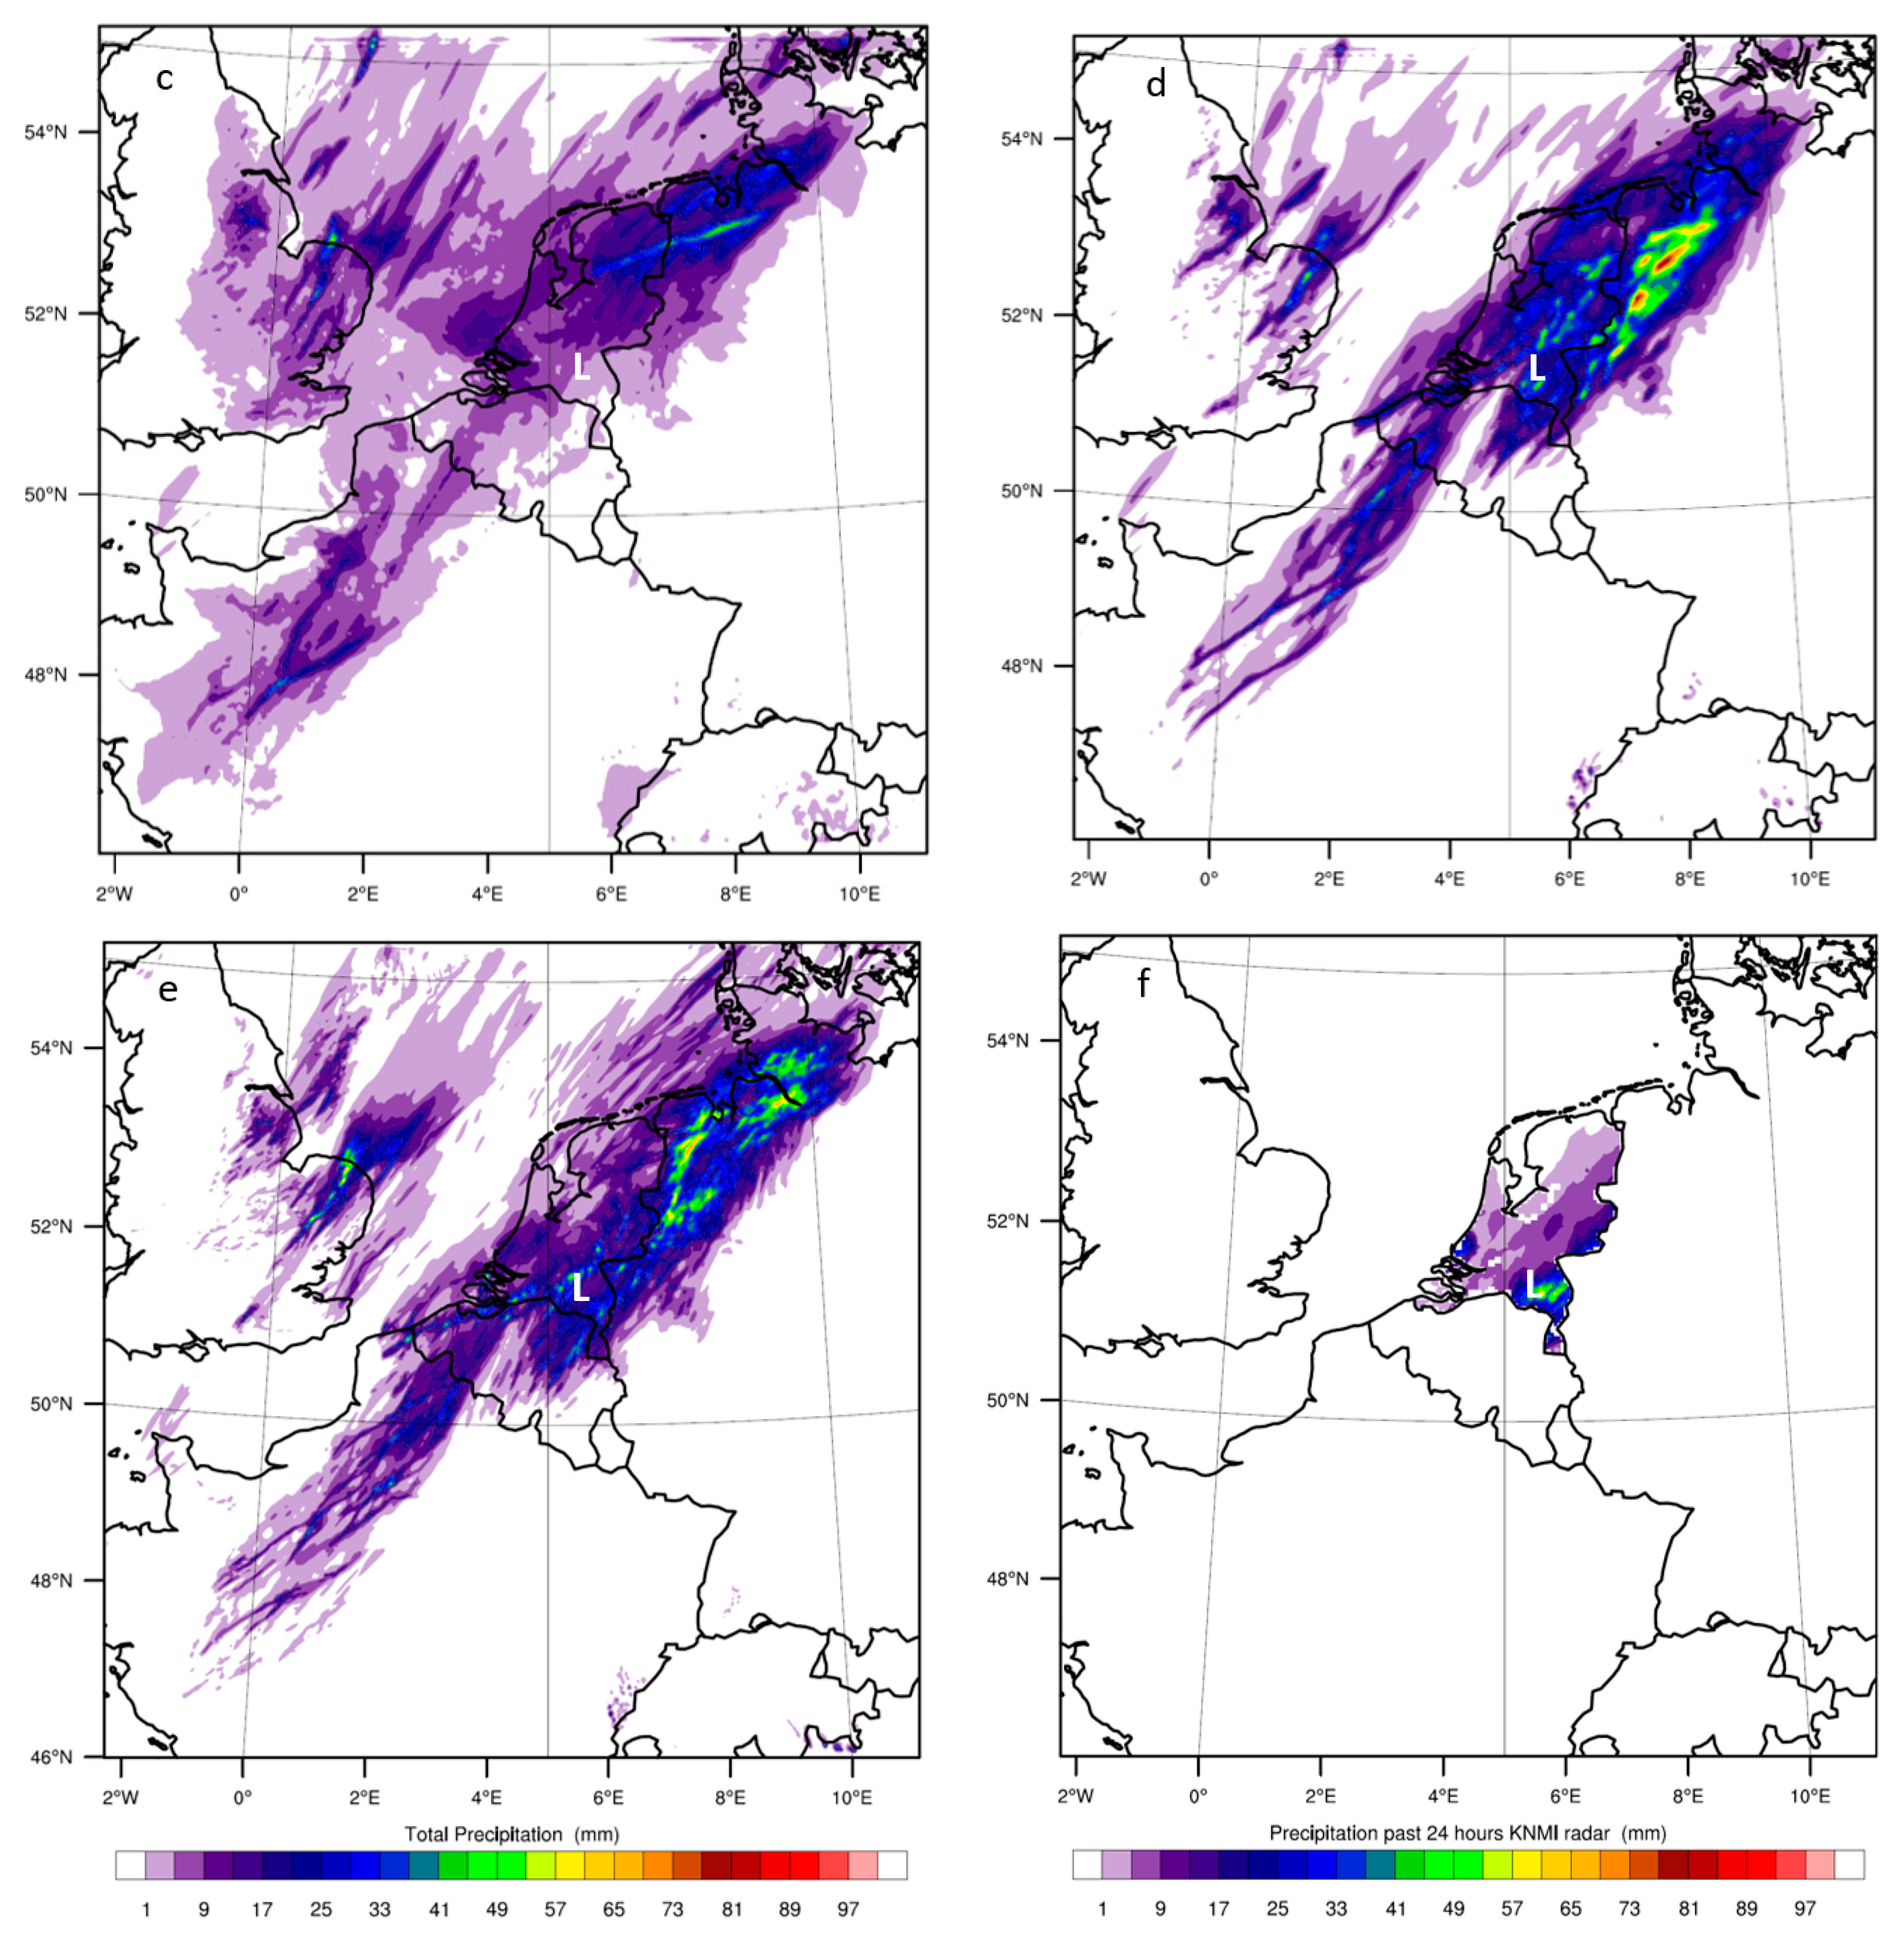 Atmosphere Free Full Text Mesoscale Model Simulation Of A Severe Summer Thunderstorm In The Netherlands Performance And Uncertainty Assessment For Parameterised And Resolved Convection Html